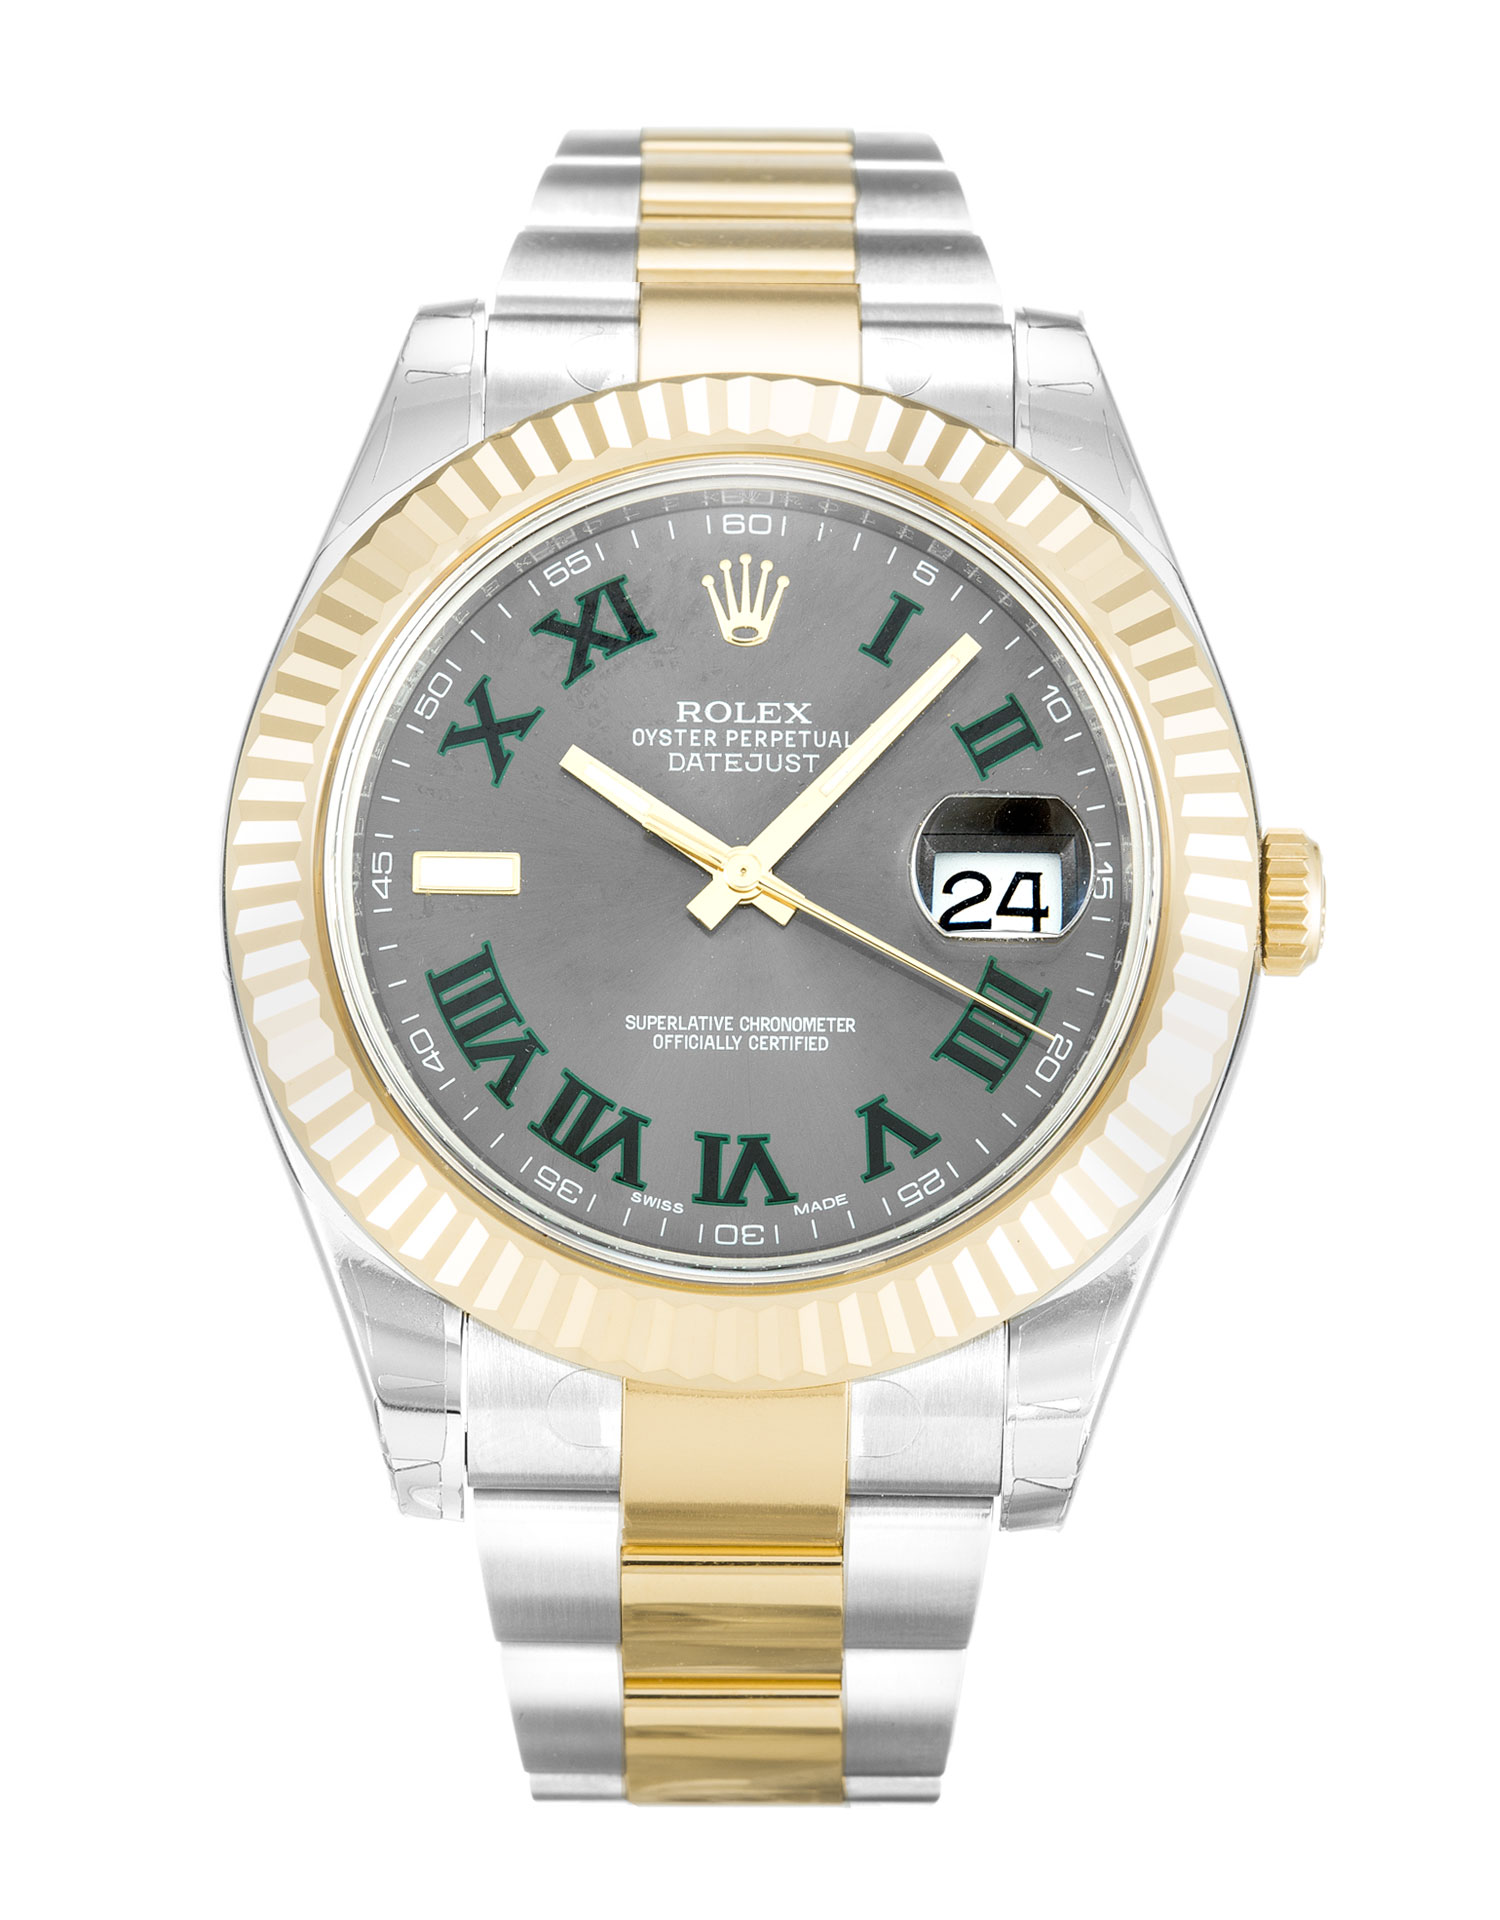 Rolex Datejust Ii 116333 Mens 41 Mm Steel & Yellow Gold Case Automatic Movement – iapac.to